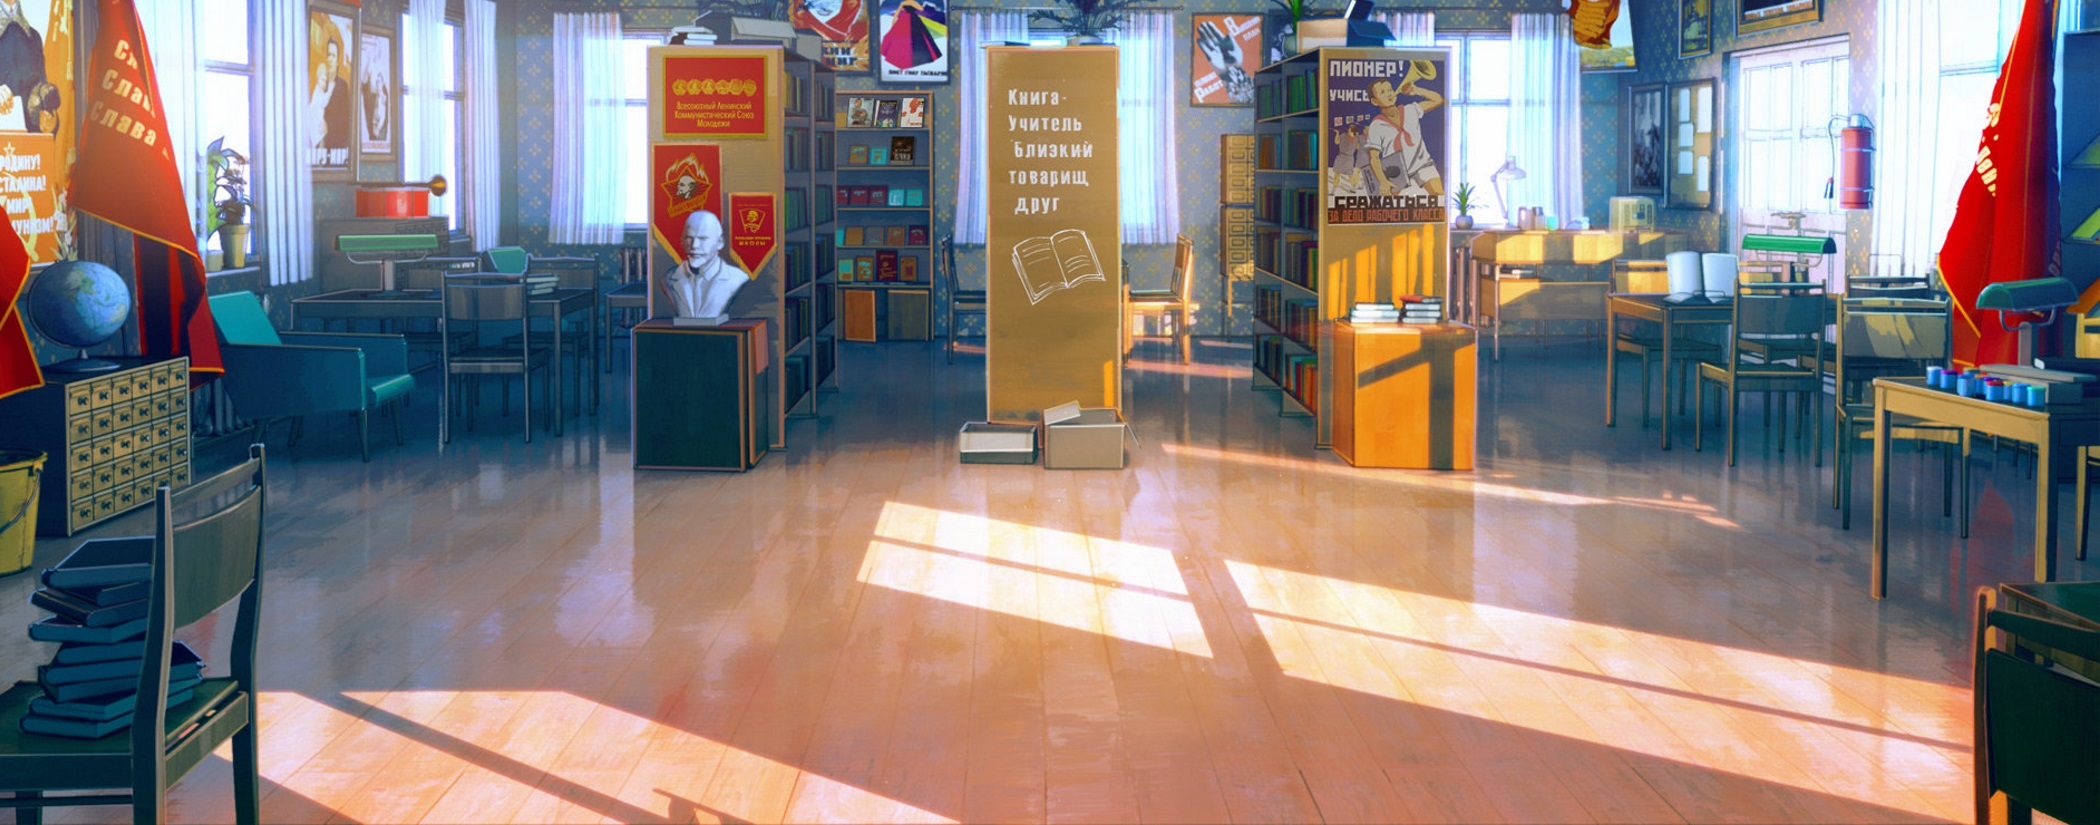 XL Background - Library 01.jpg